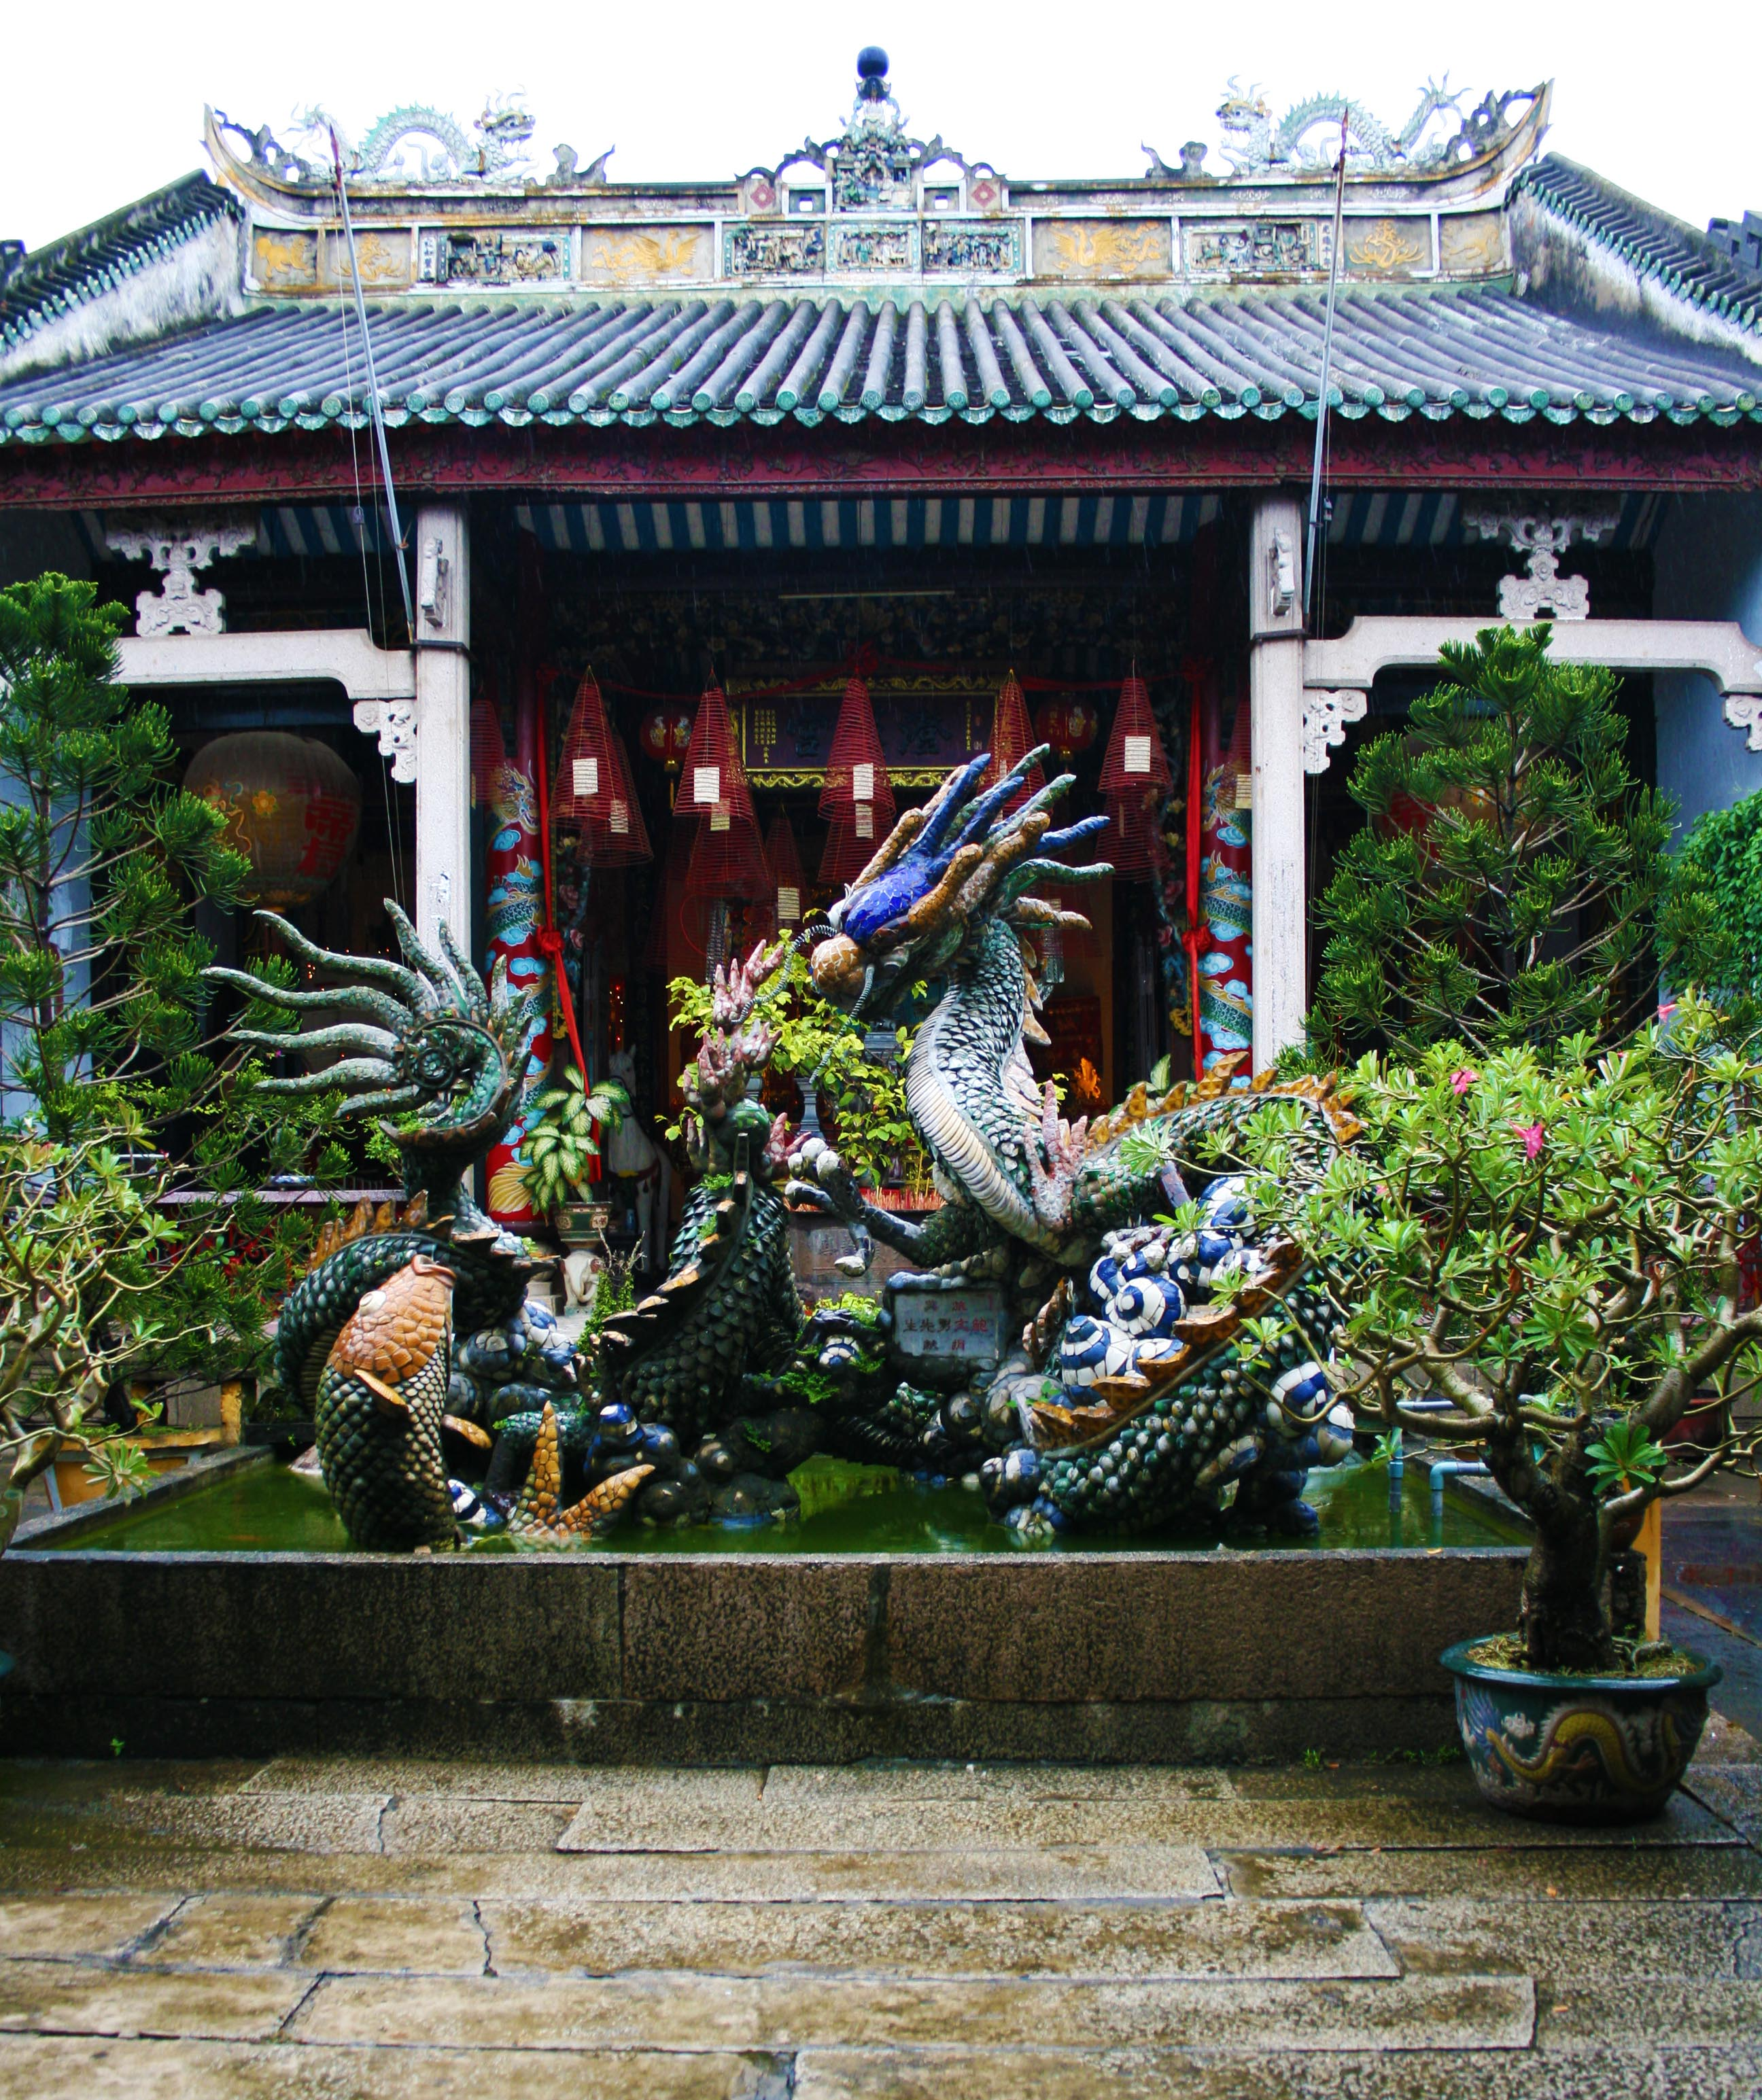 Dragon sculture at Hoi Quan Quang Trieu temple